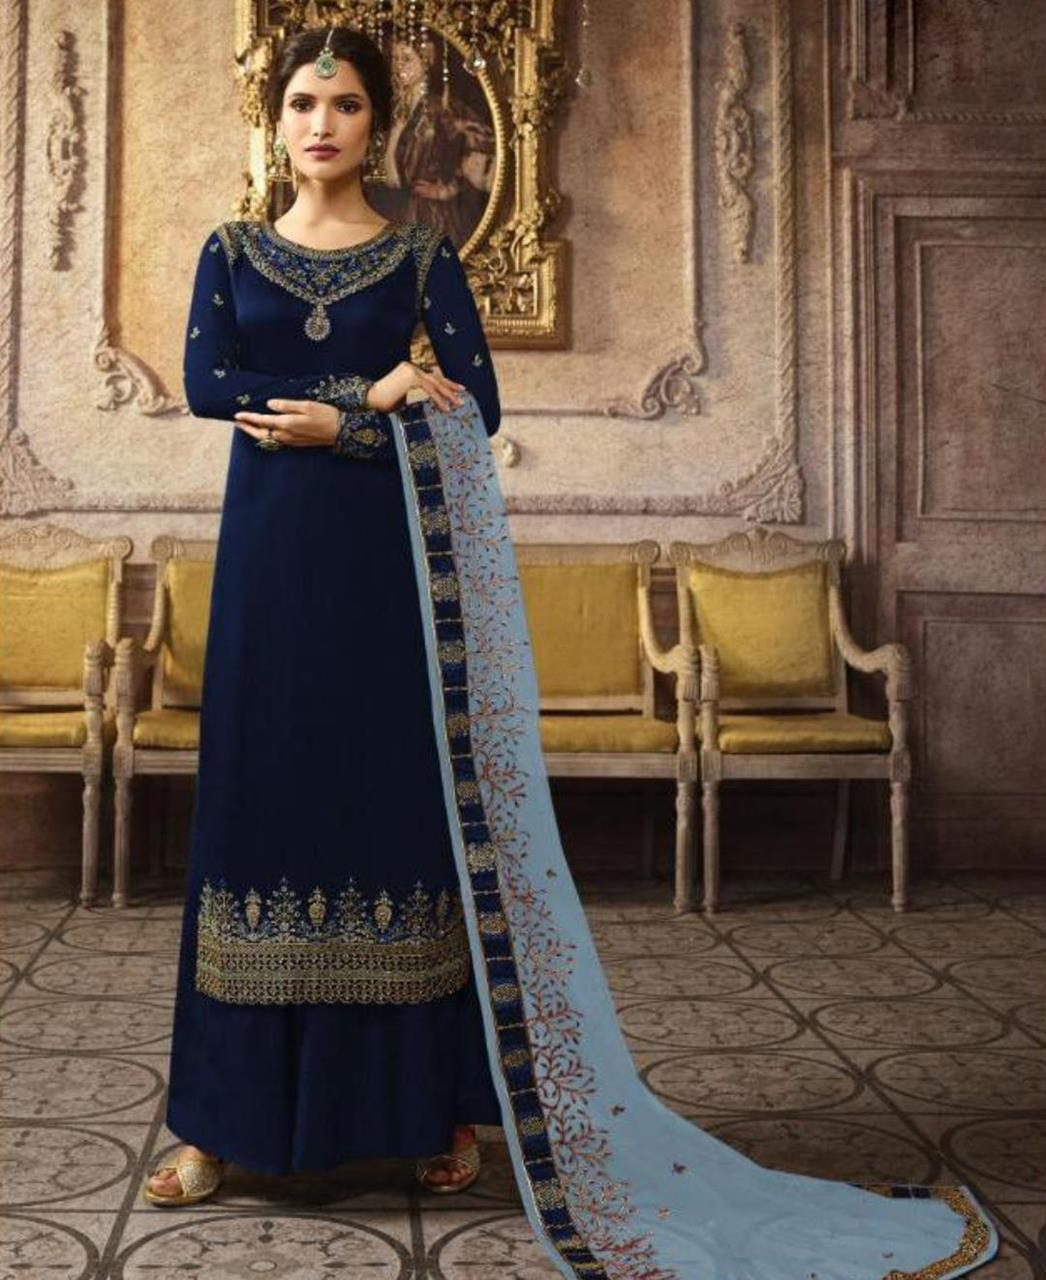 Embroidered Silk Straight cut Salwar Kameez in Neavy Blue